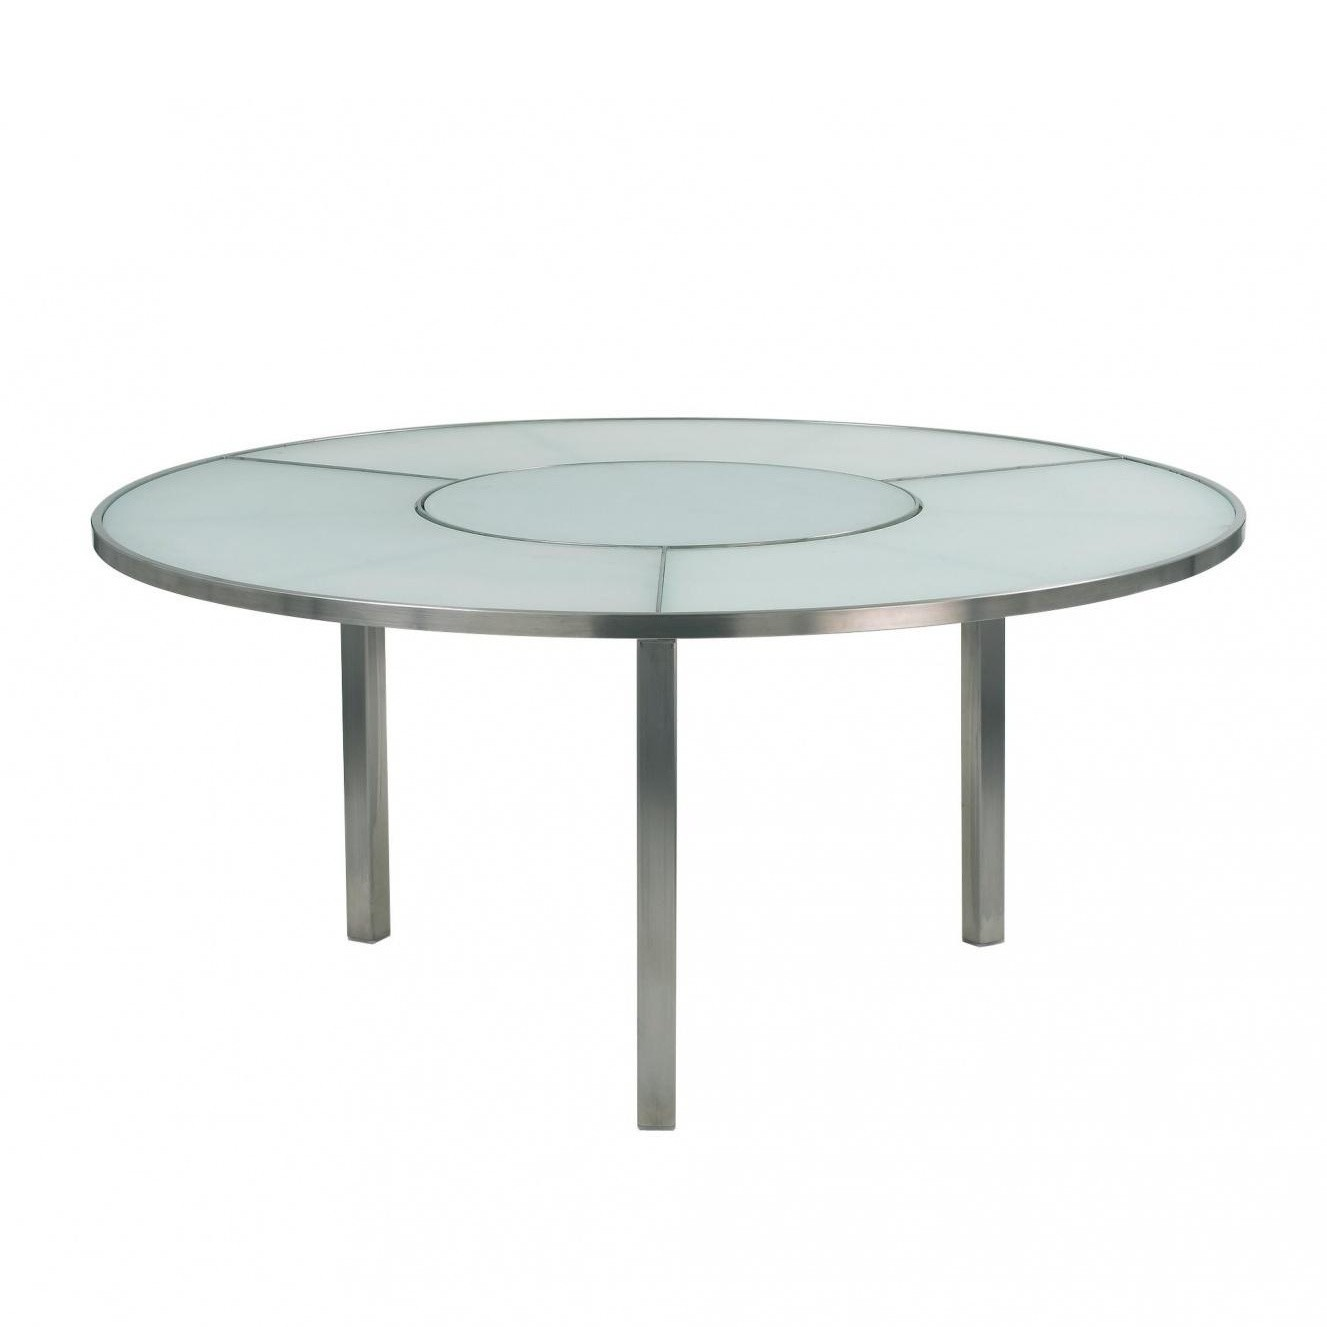 royal botania o zon garden table round 160 ambientedirect rh ambientedirect com